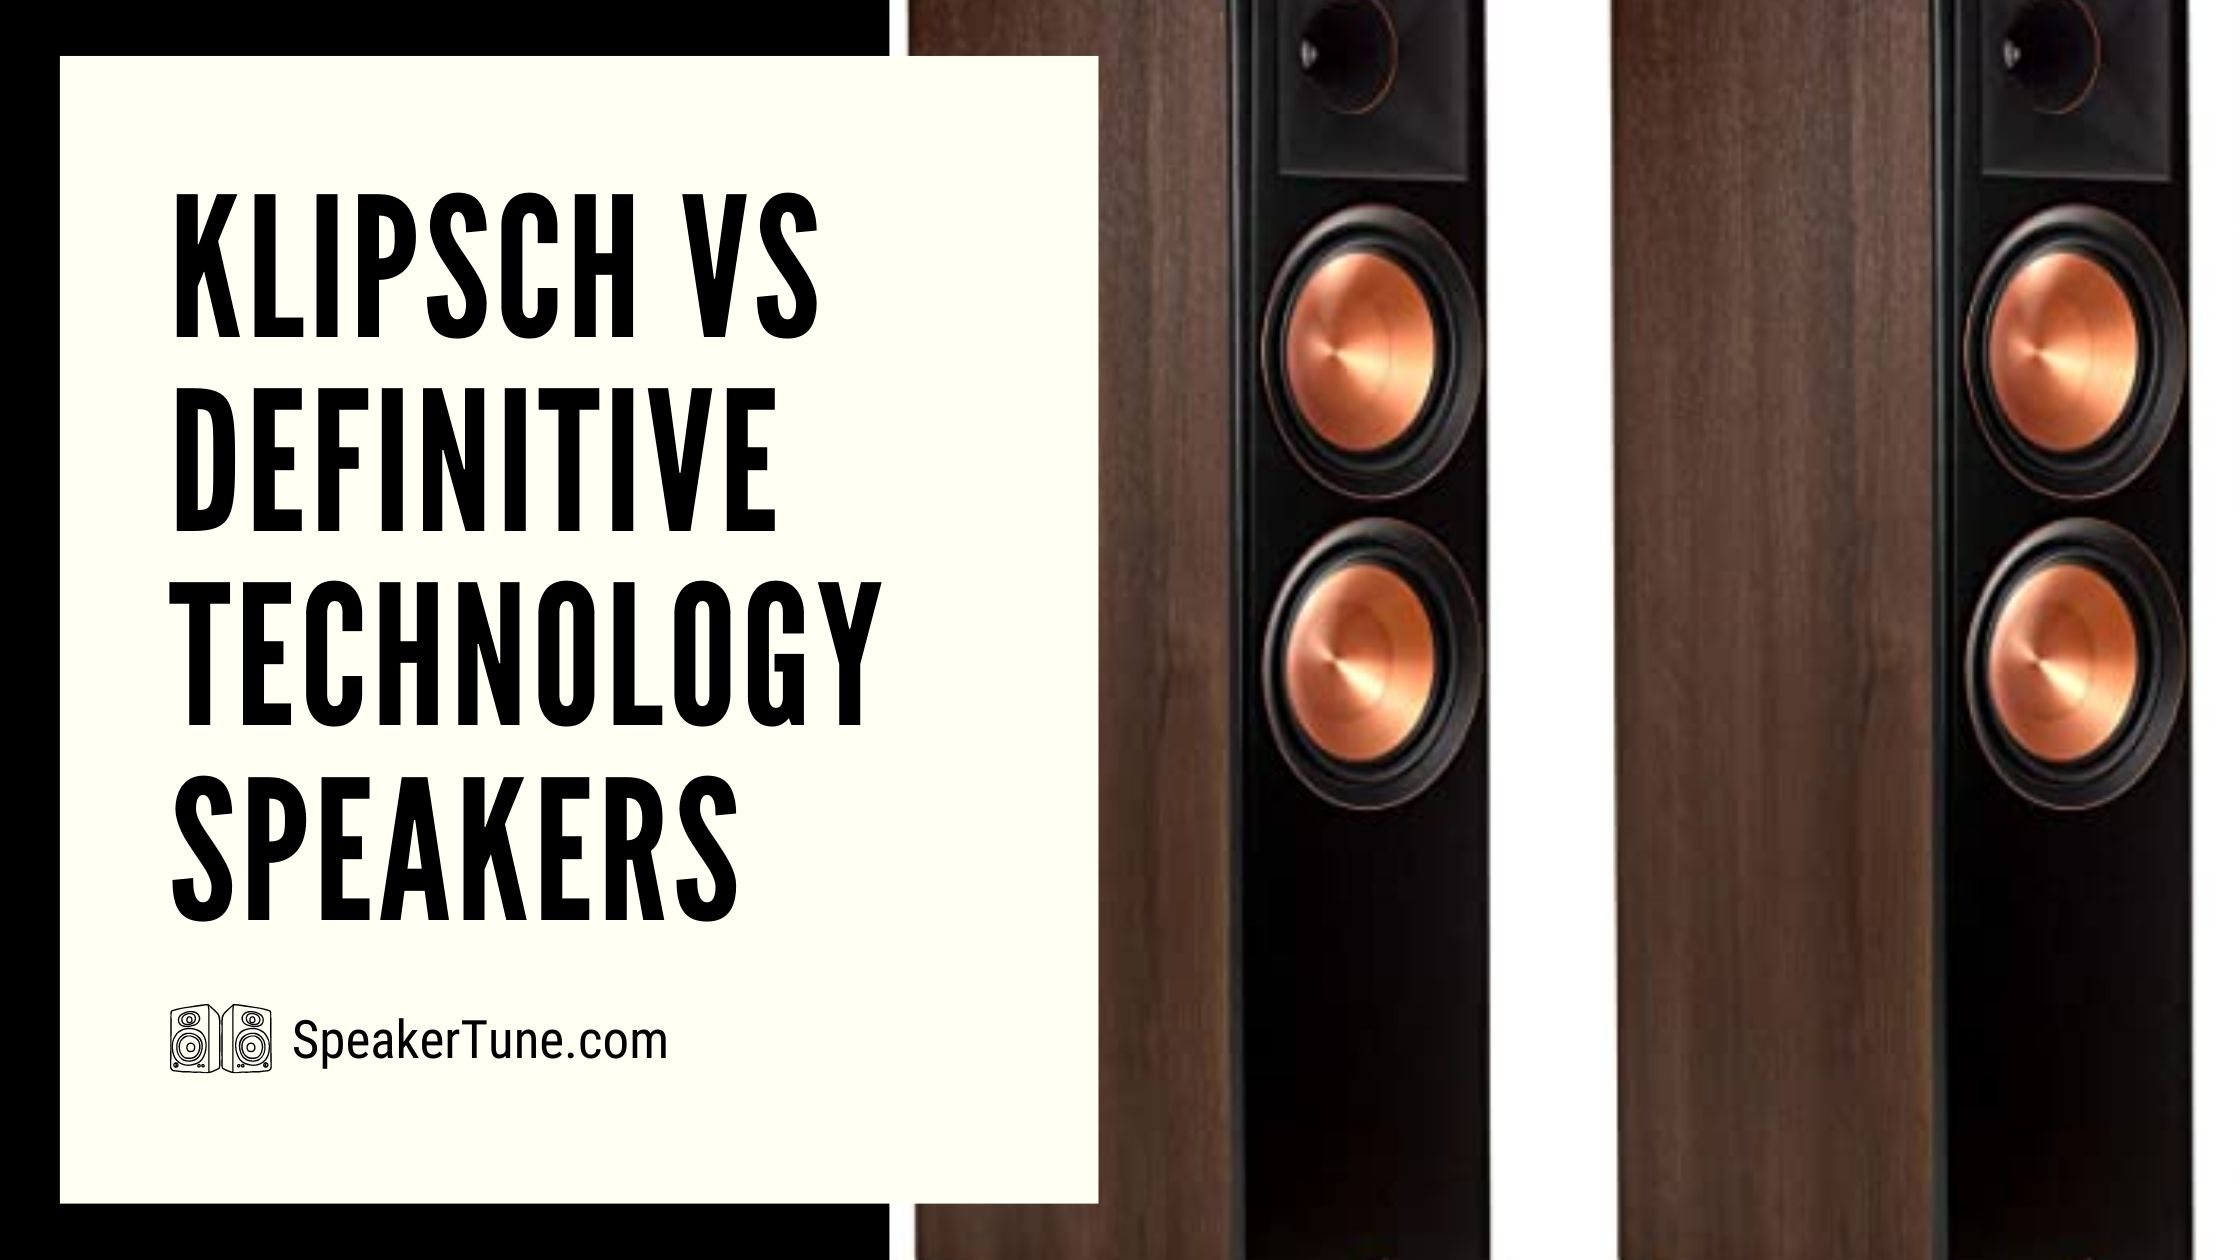 ST-Klipsch-vs-definitive-technology-speakers